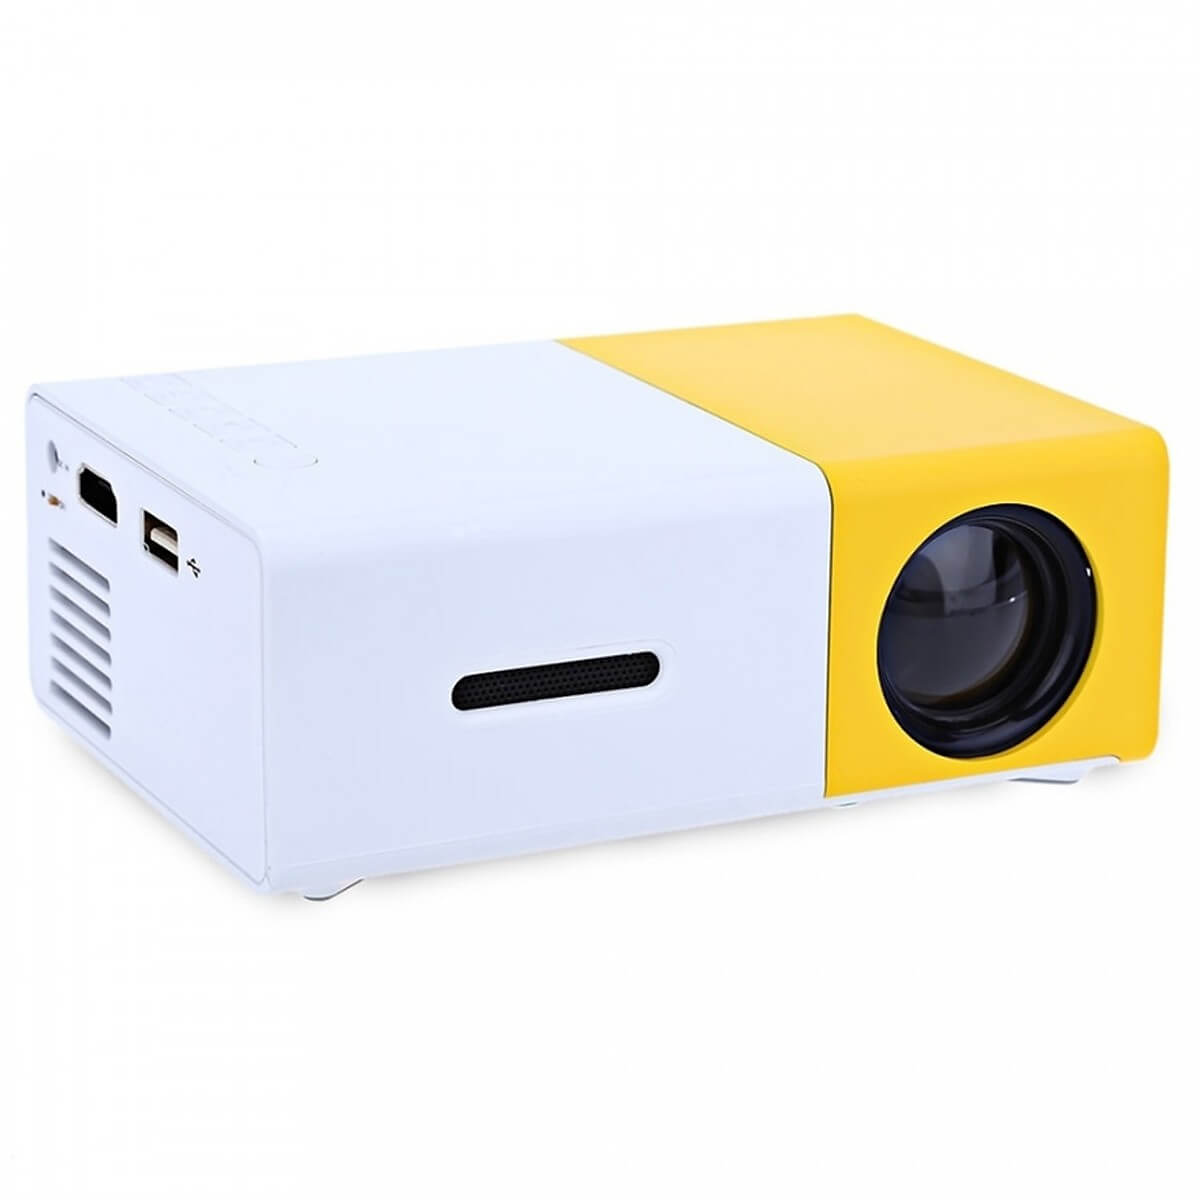 LCD LED Projector YG-300